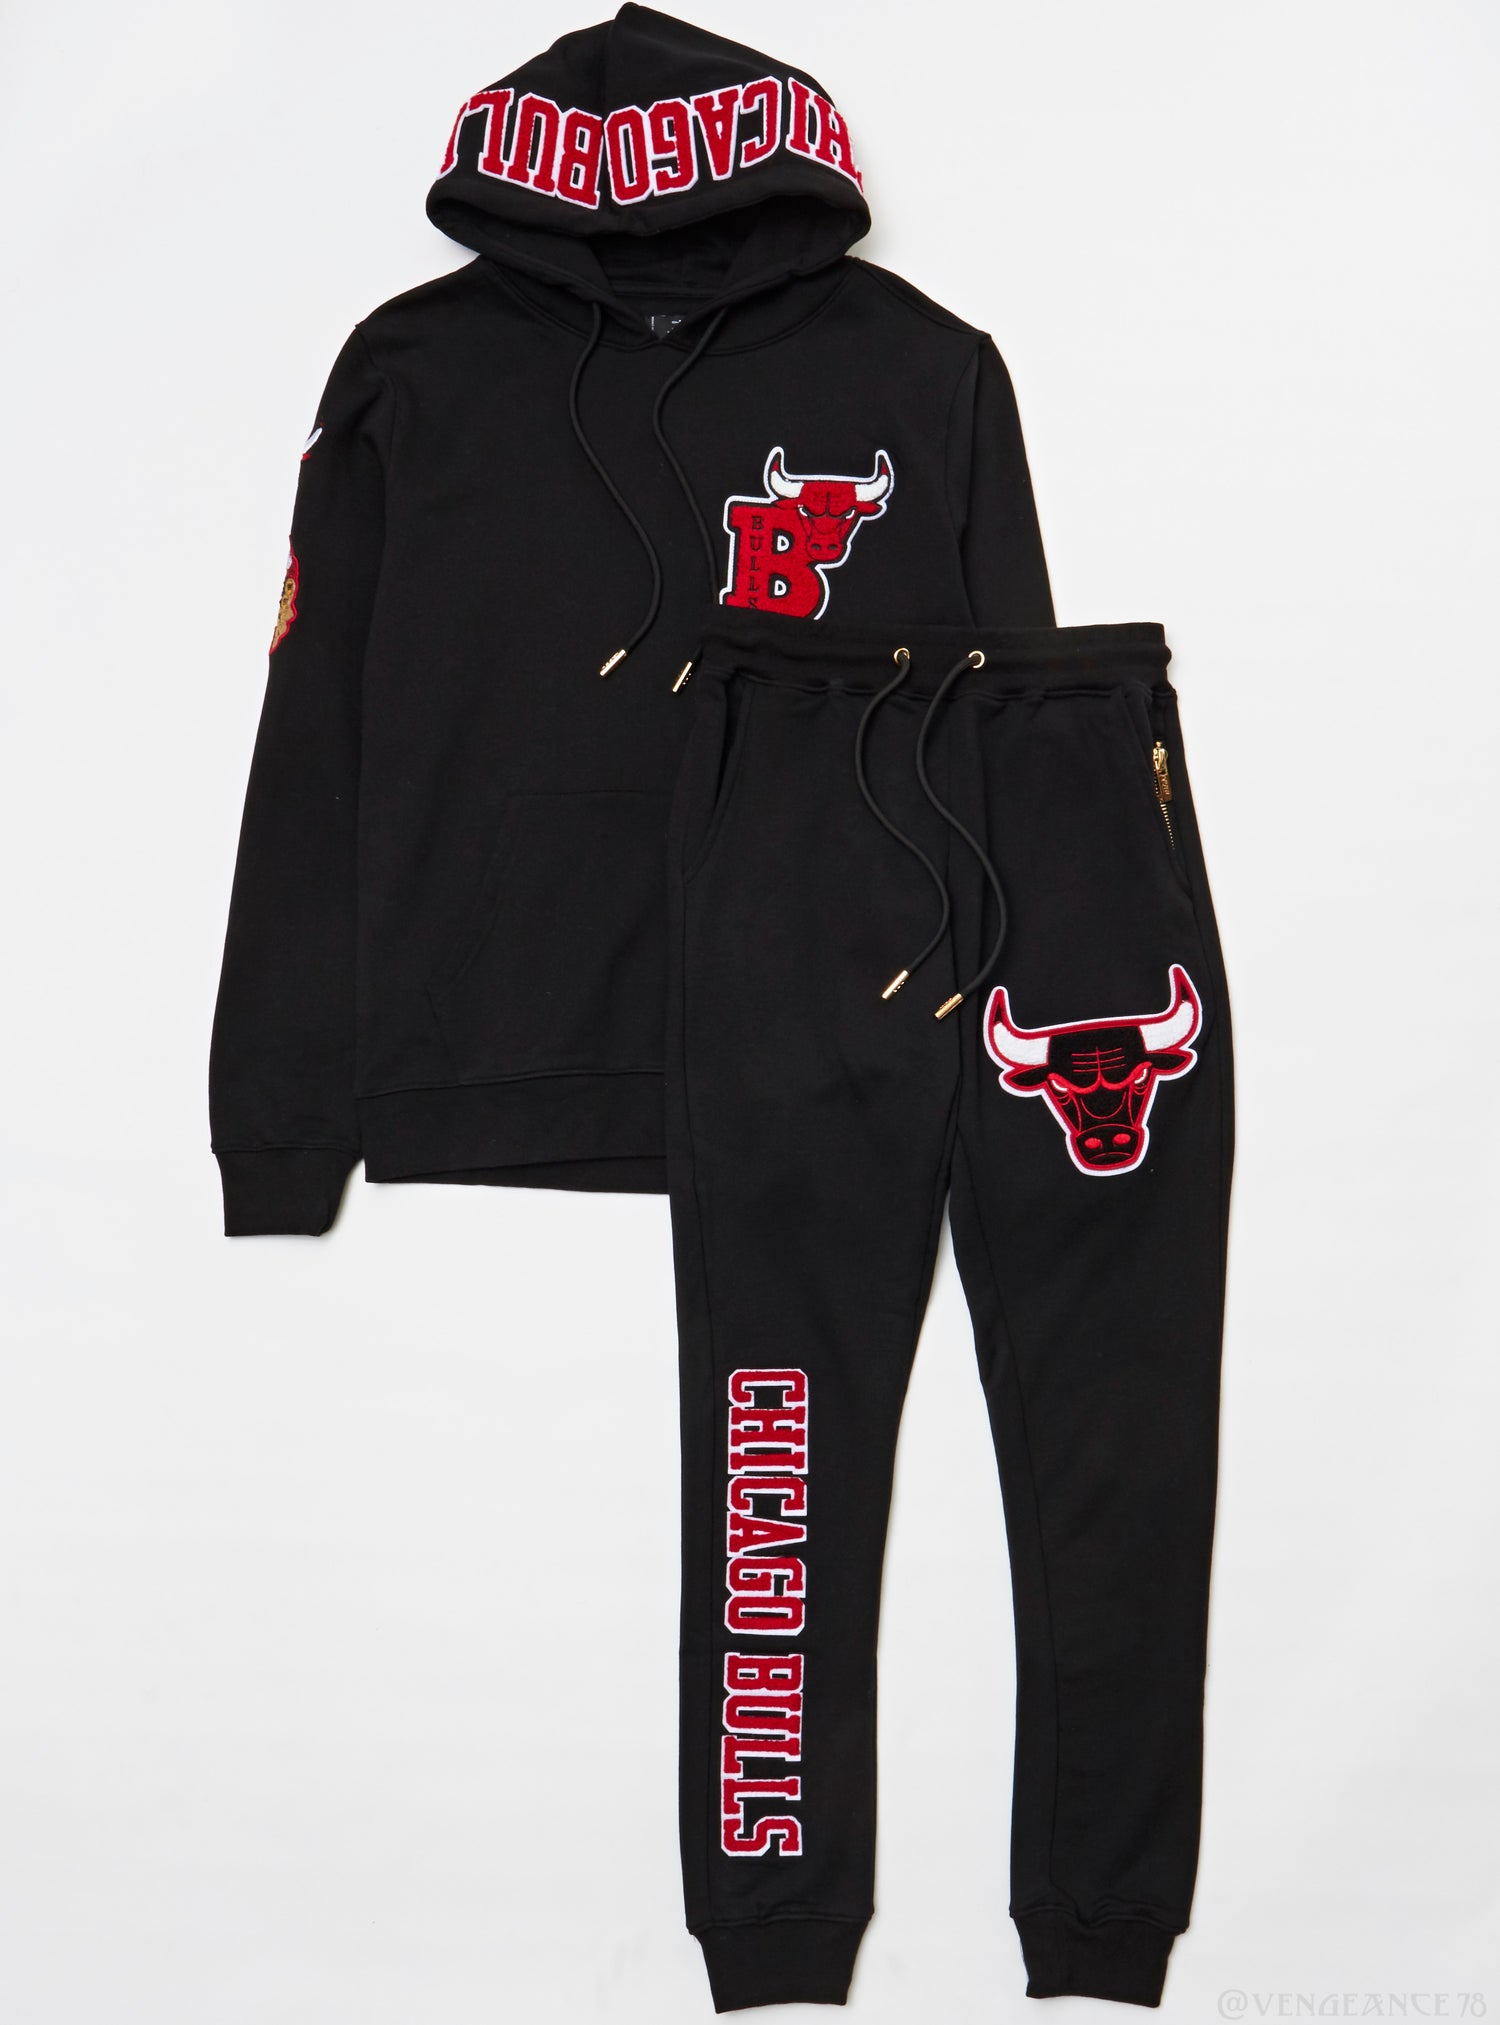 Pro Standard Sweatsuit - Chicago Bulls - Black